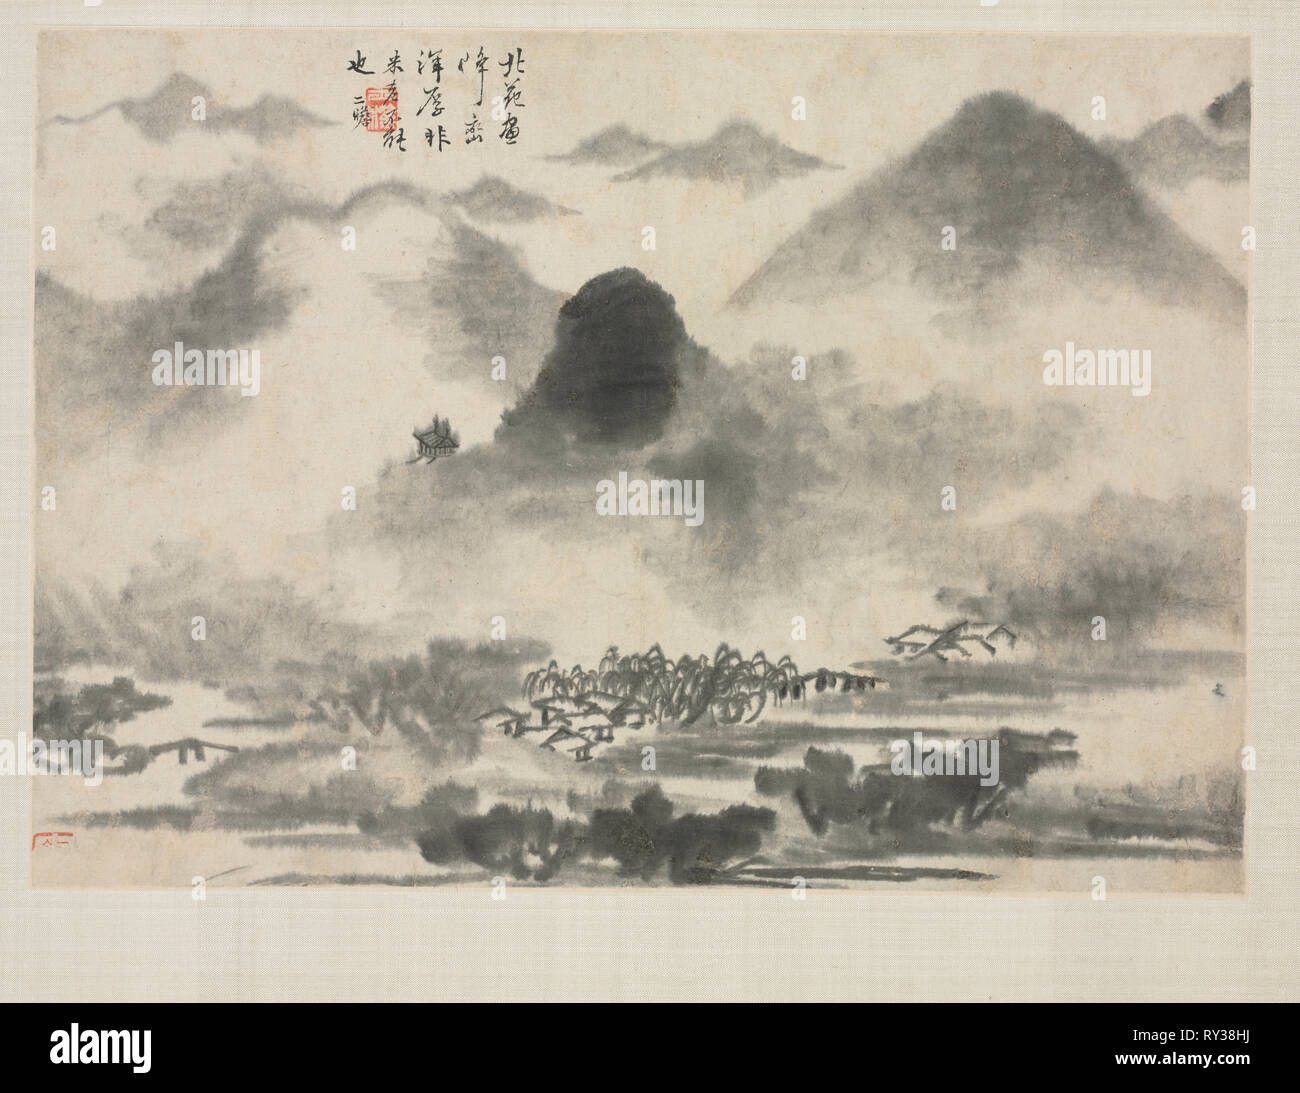 Landscape Album in Various Styles: Landscape after Mi Fei, 1684. Zha Shibiao (Chinese, 1615-1698). Album leaf, ink and light color on paper; overall: 29.9 x 39.4 cm (11 3/4 x 15 1/2 in Stock Photo